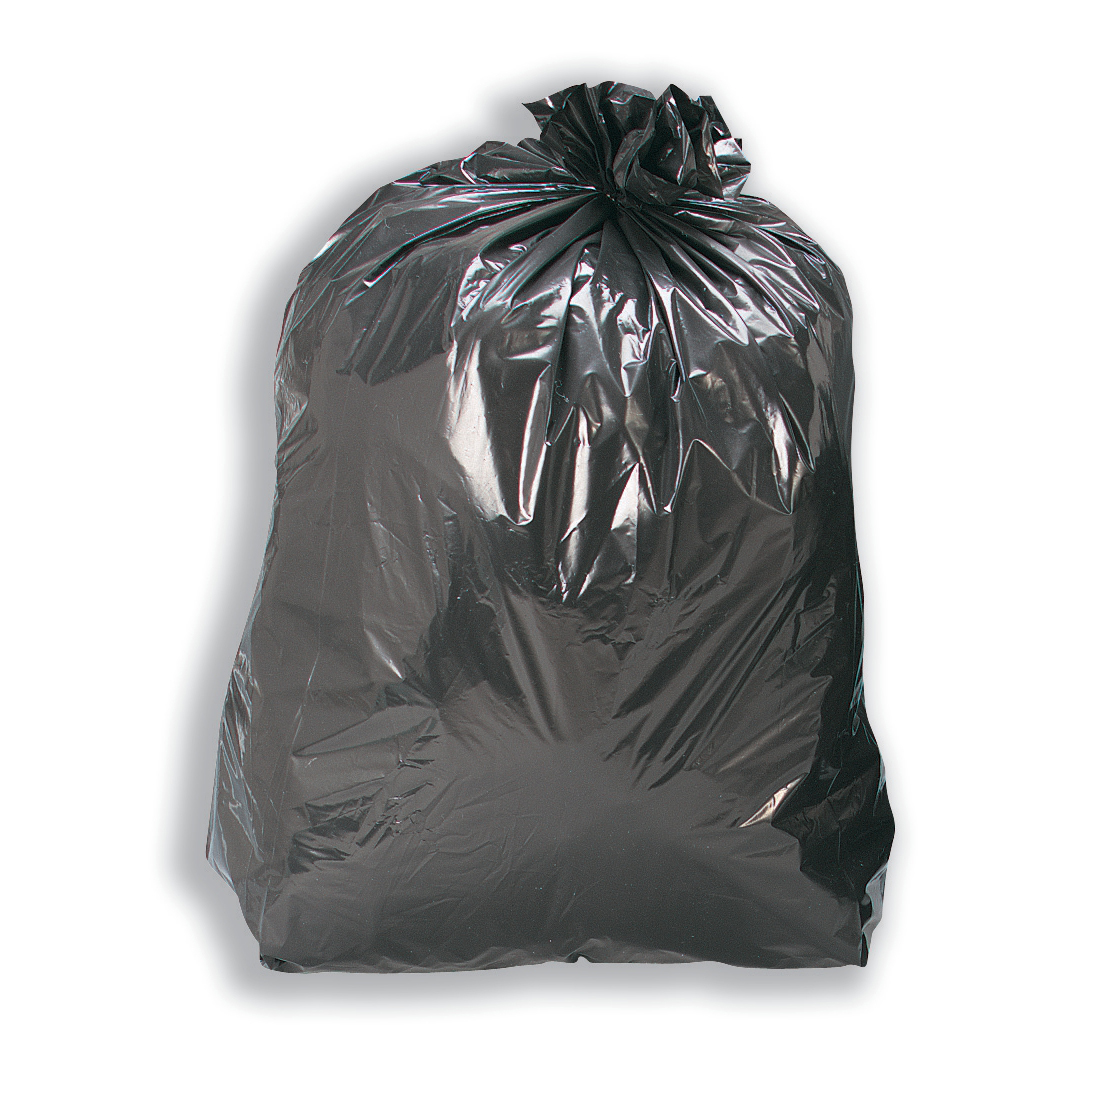 5 Star Facilities Compactor Bin Liners Extra HeavyDuty 110Litre Capacity W430/770xH950mm Black Pack 200